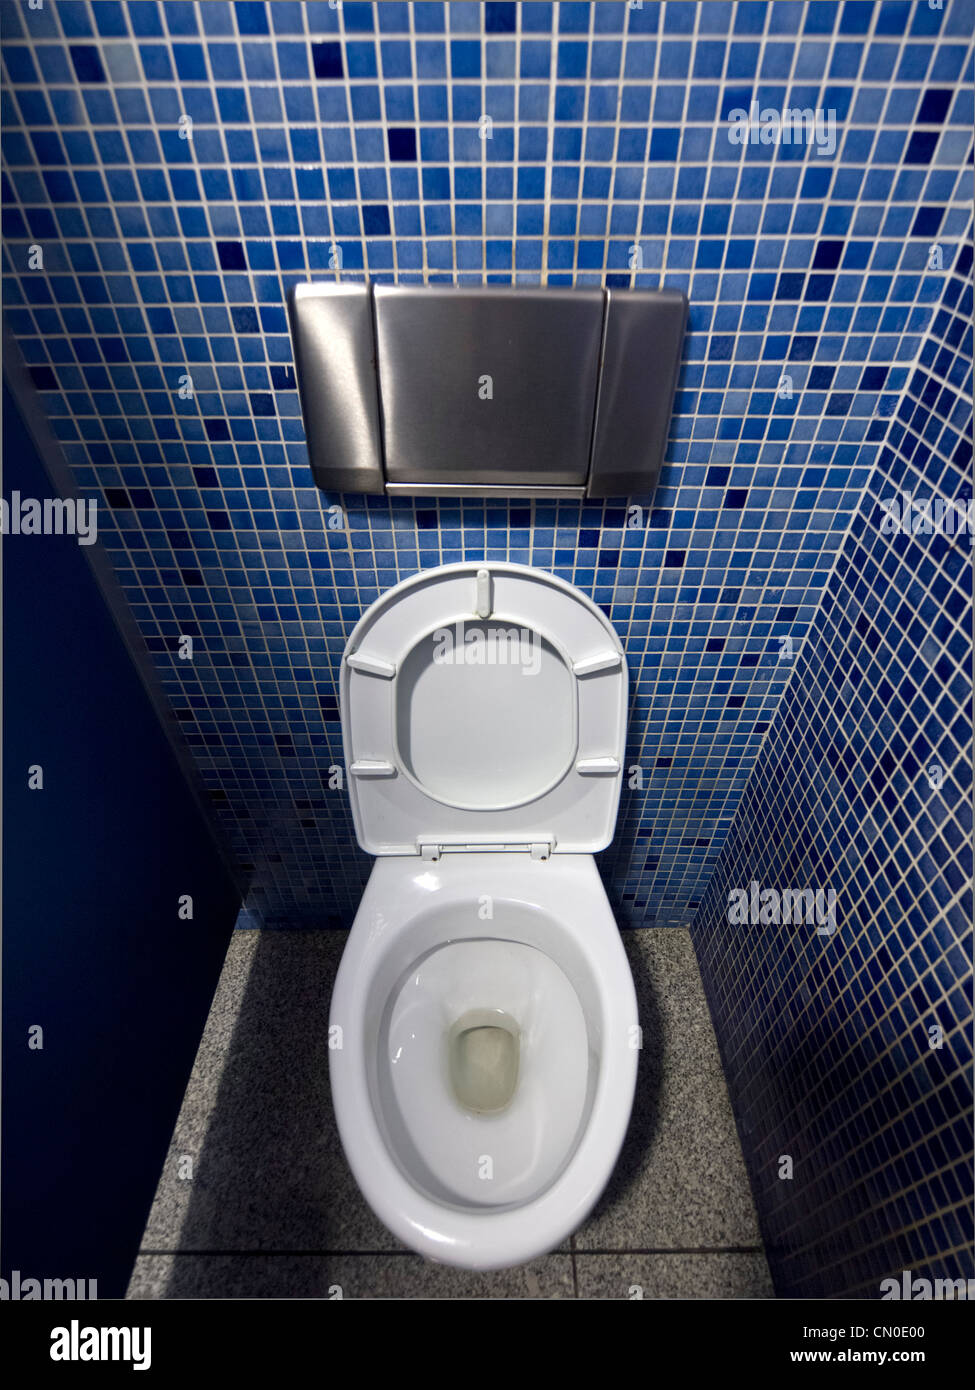 Loo Seat Stock Photos & Loo Seat Stock Images - Alamy